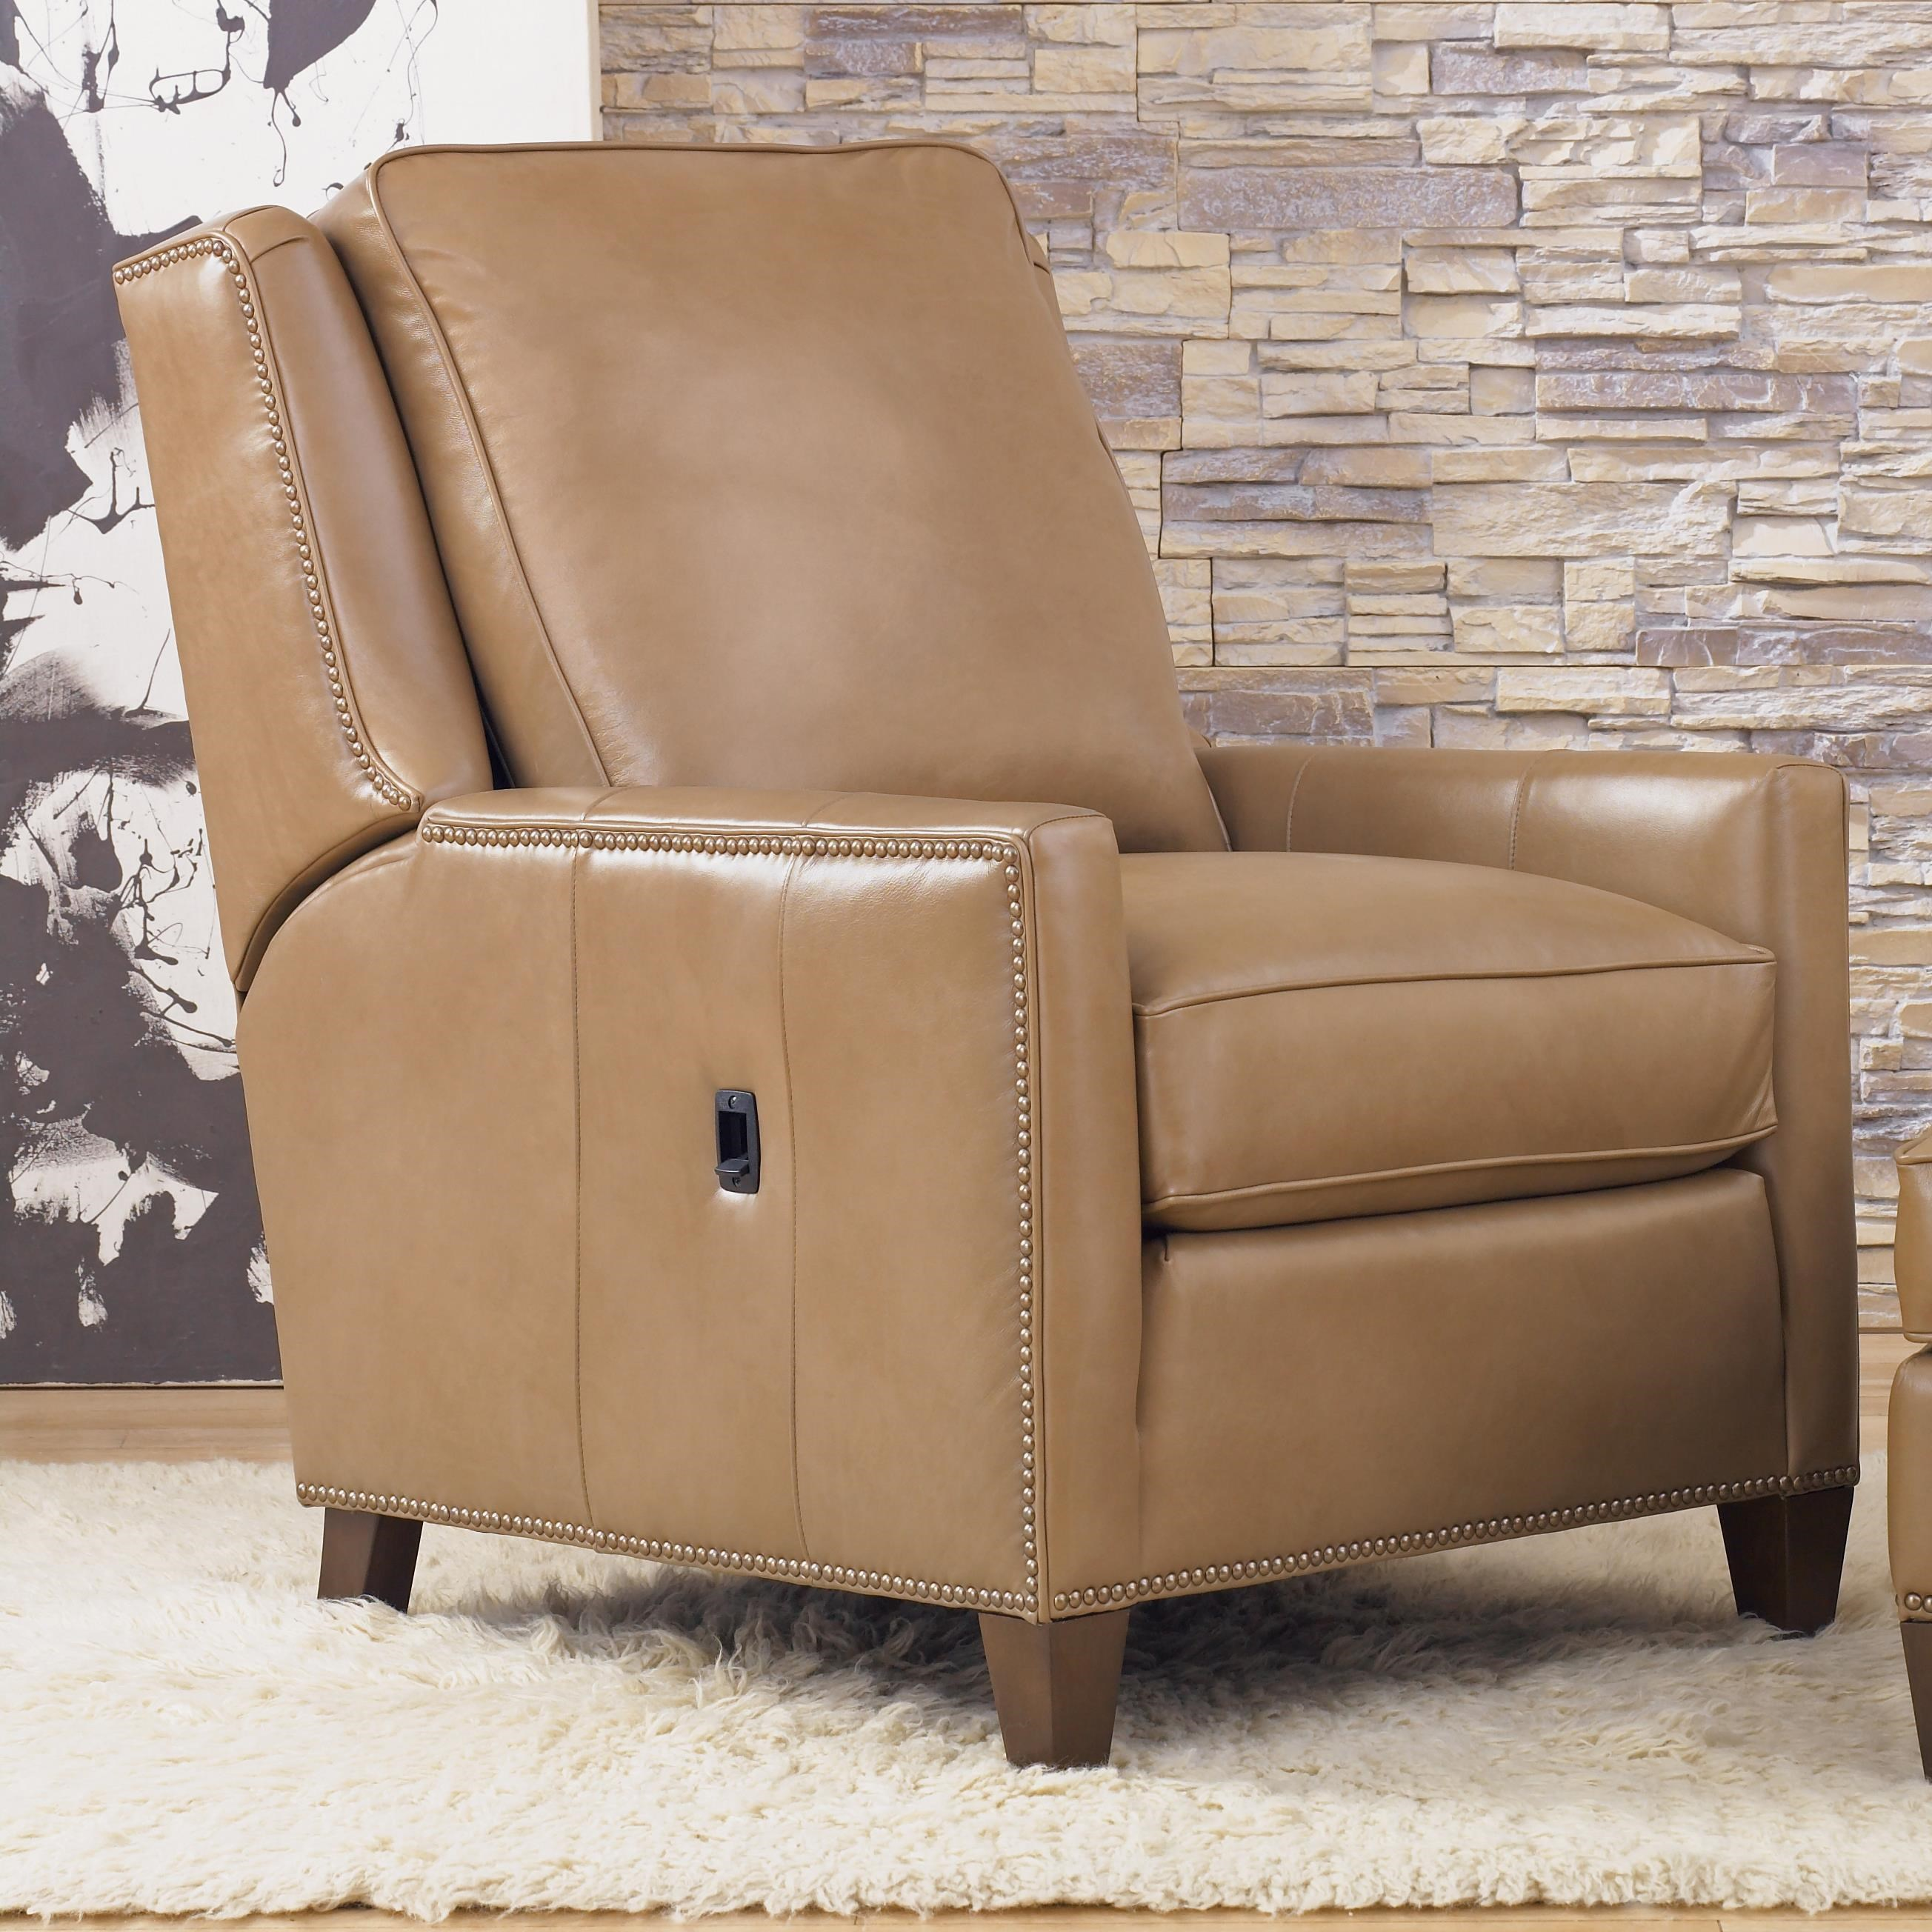 Captivating Smith Brothers Recliners Power Recliner